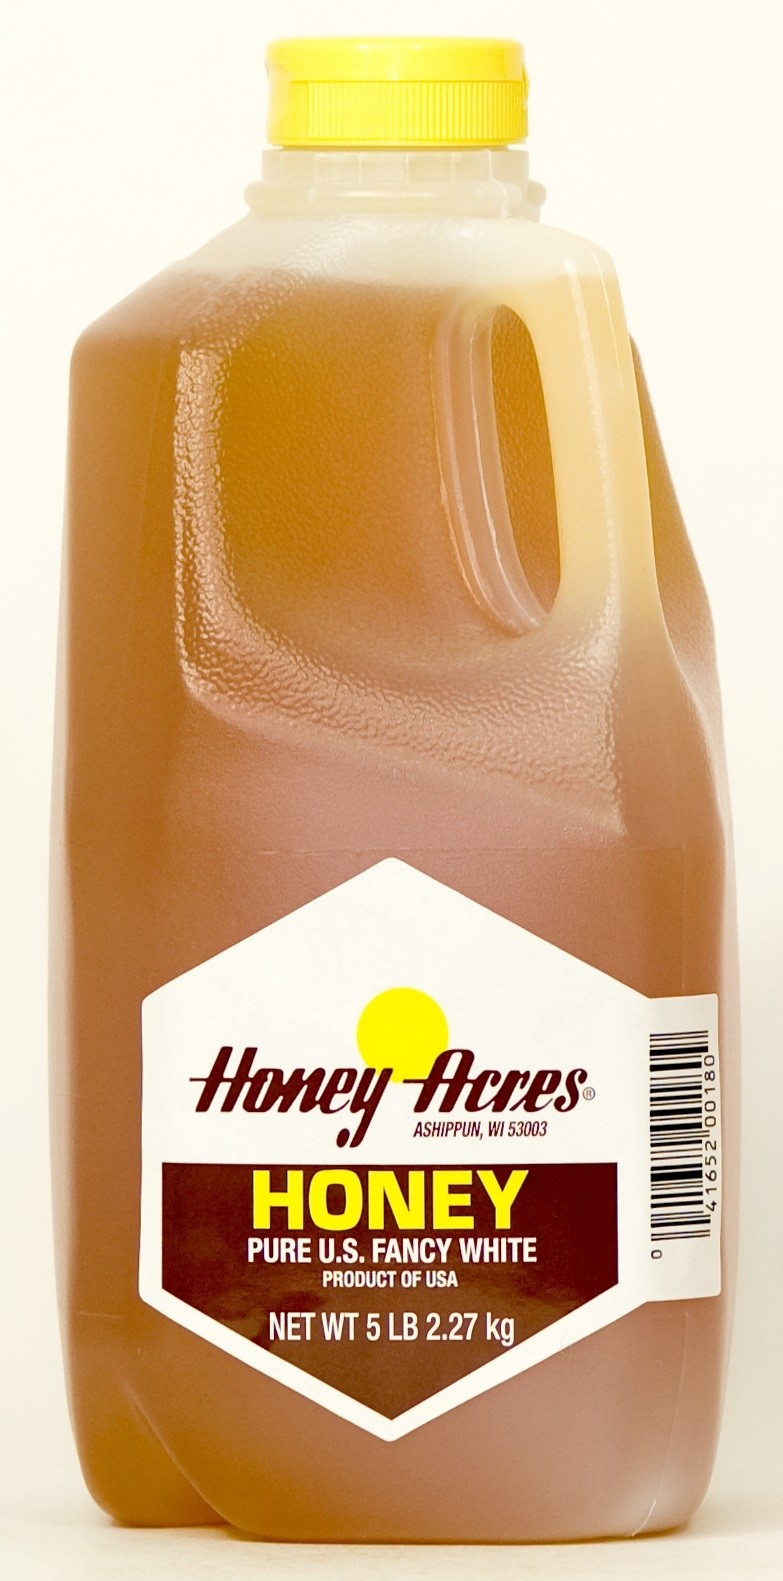 Honey Acres Honey, Pure Clover Honey, 5 lb Squeeze Bottle